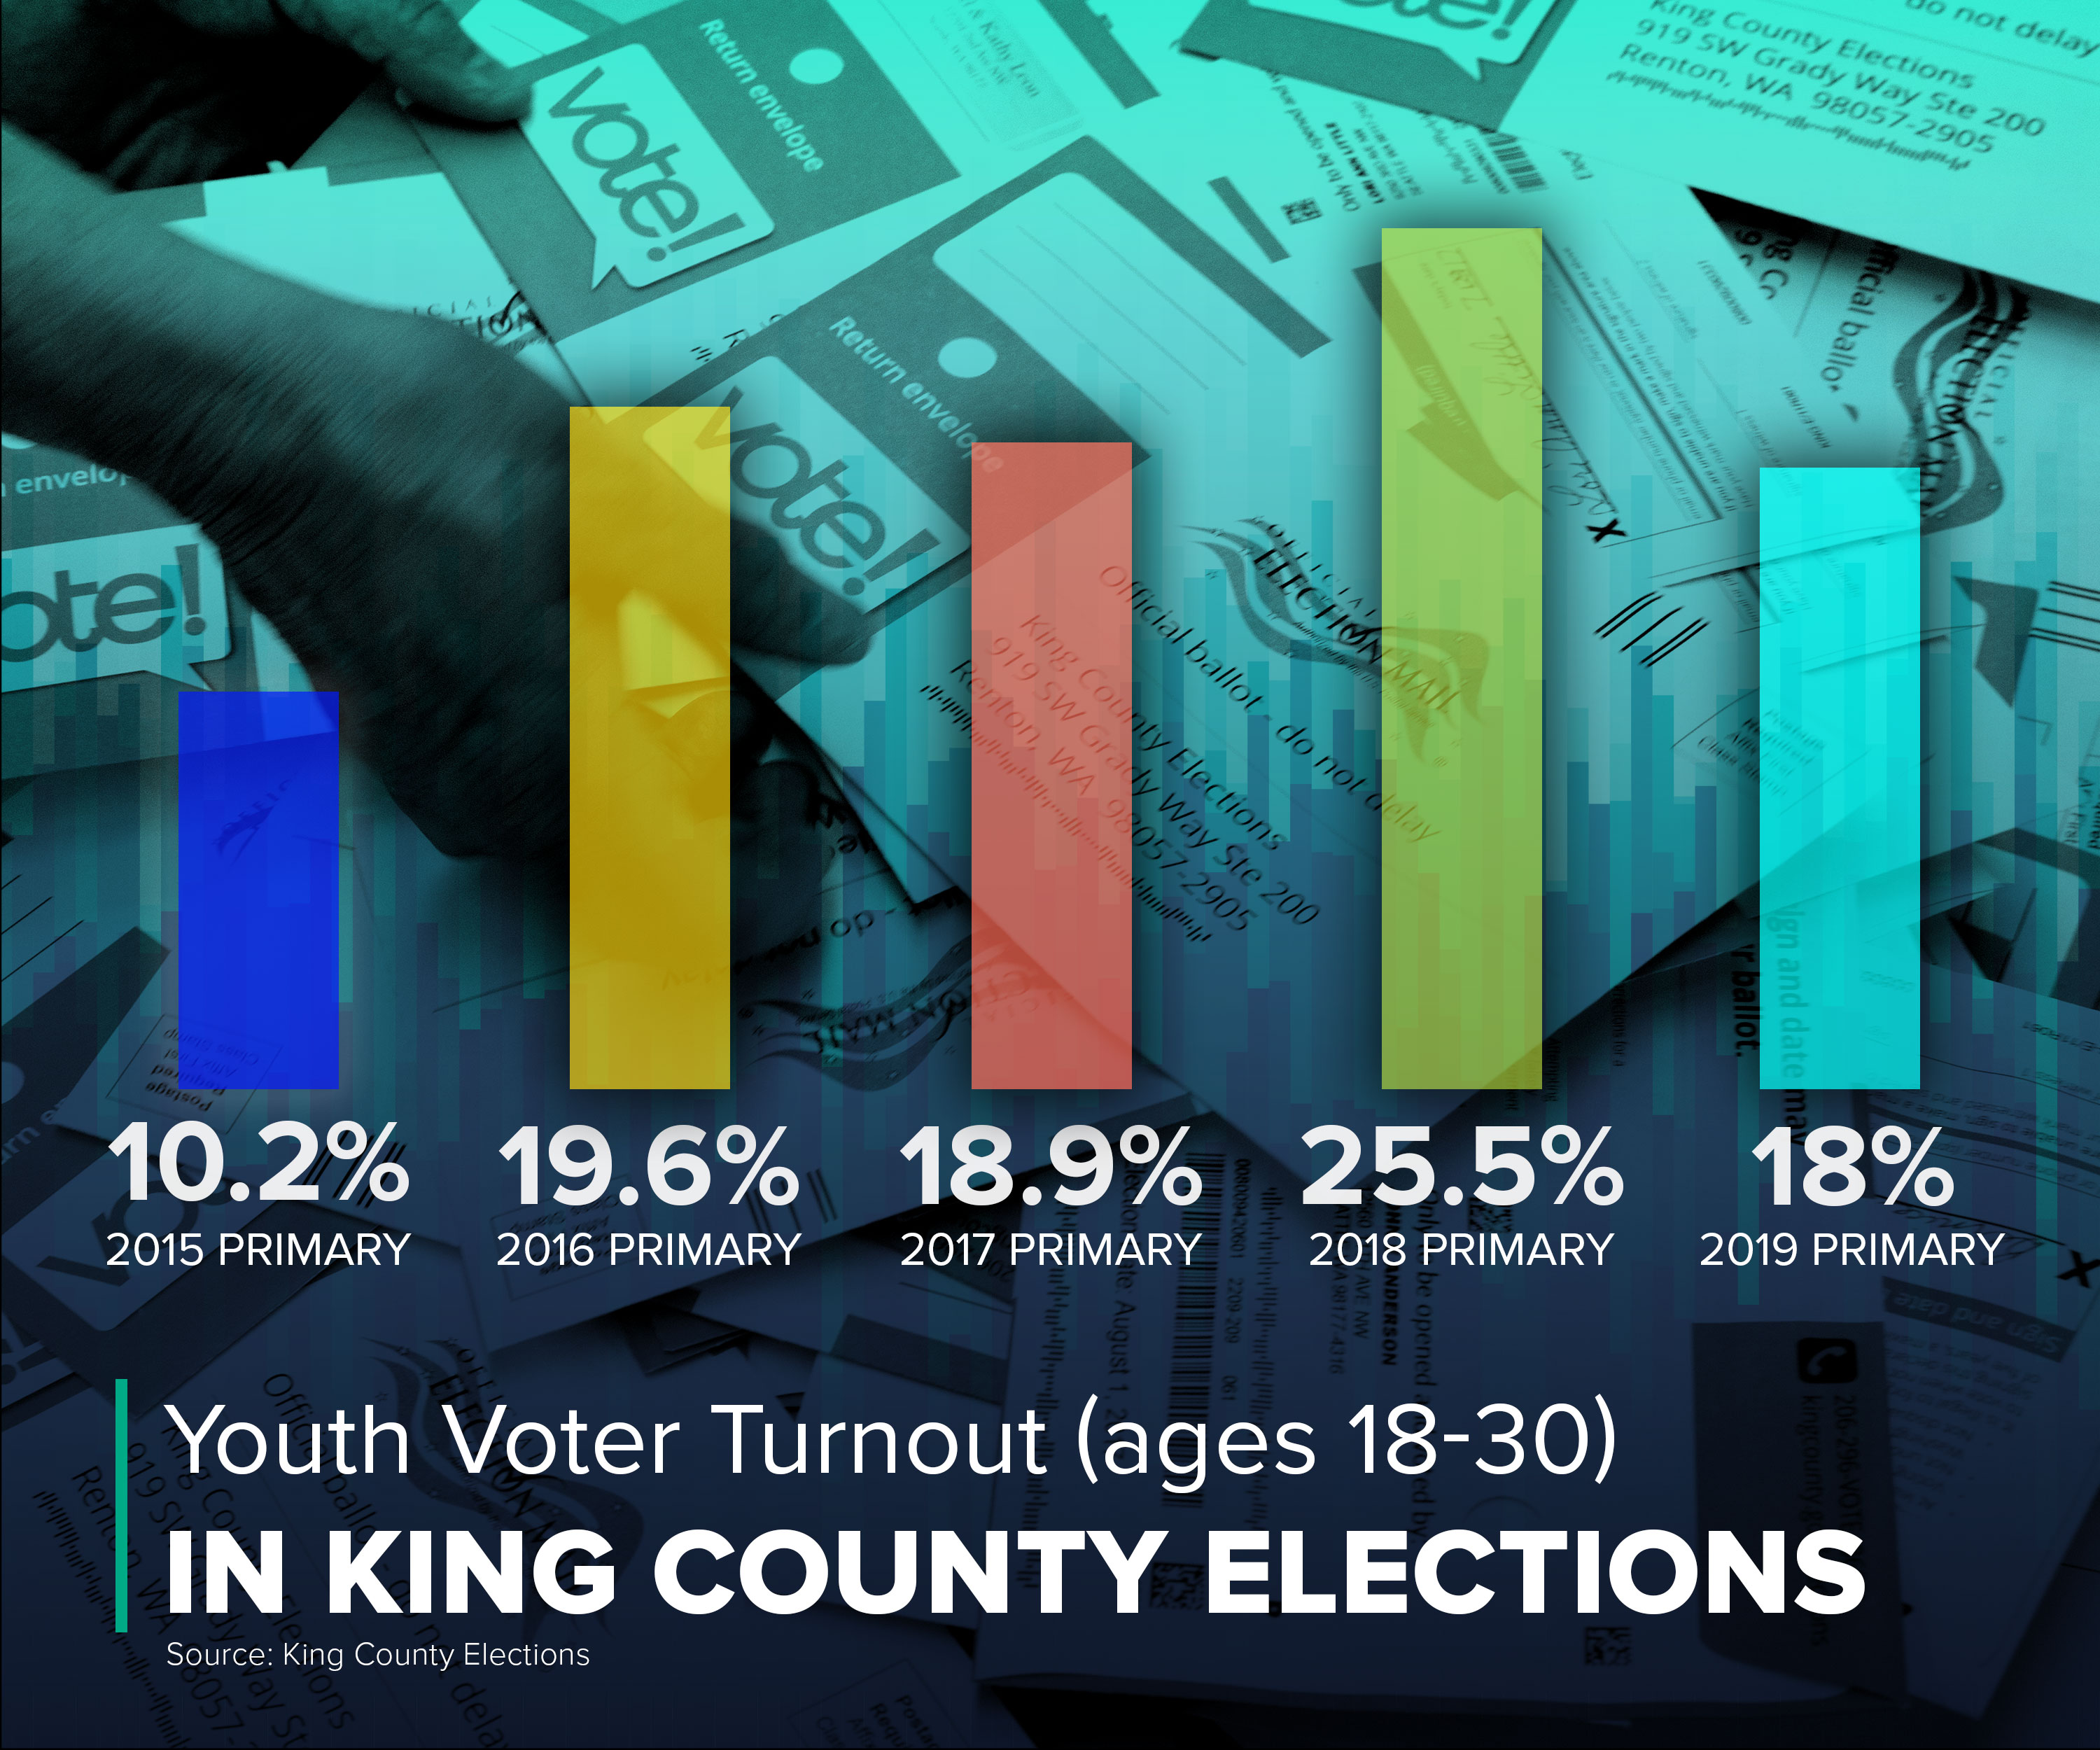 Graphic showing that in King County, turnout among voters 18-30 was higher in 2019 primary than in 2015.